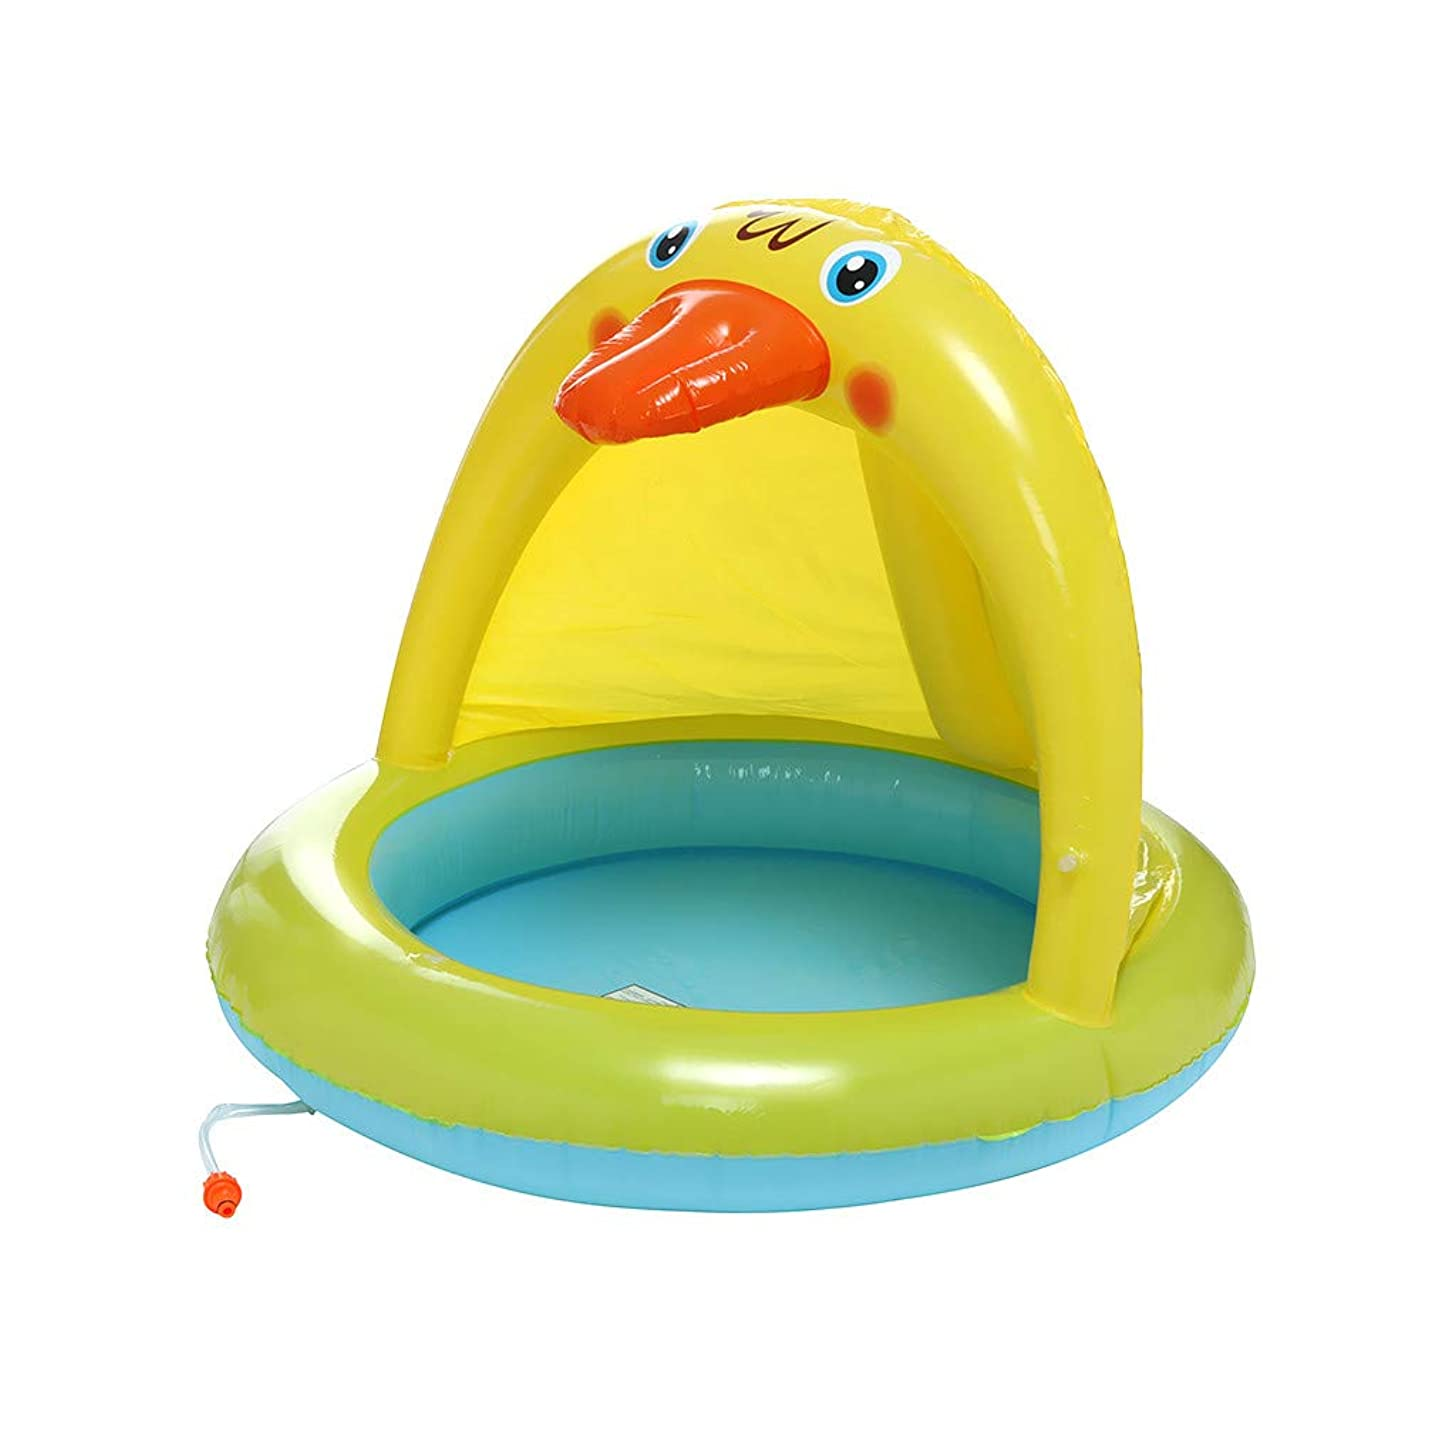 Jiayit US Fast Shipment Child Spray Ring Baby Pool, Duckling Splash Pool with Canopy, Spray Pool of 40In, Water Sprinkler Yellow